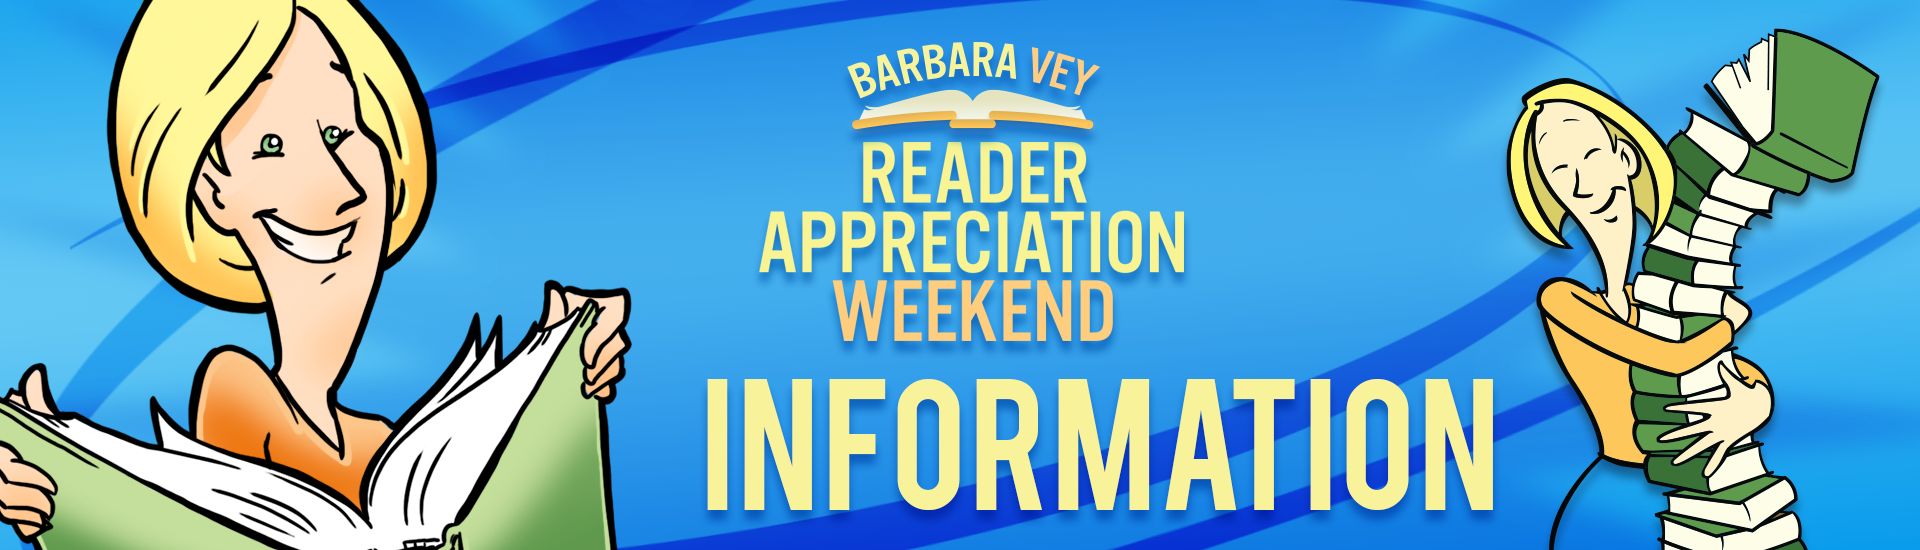 Barbara Vey's Reader Appreciation Weekend